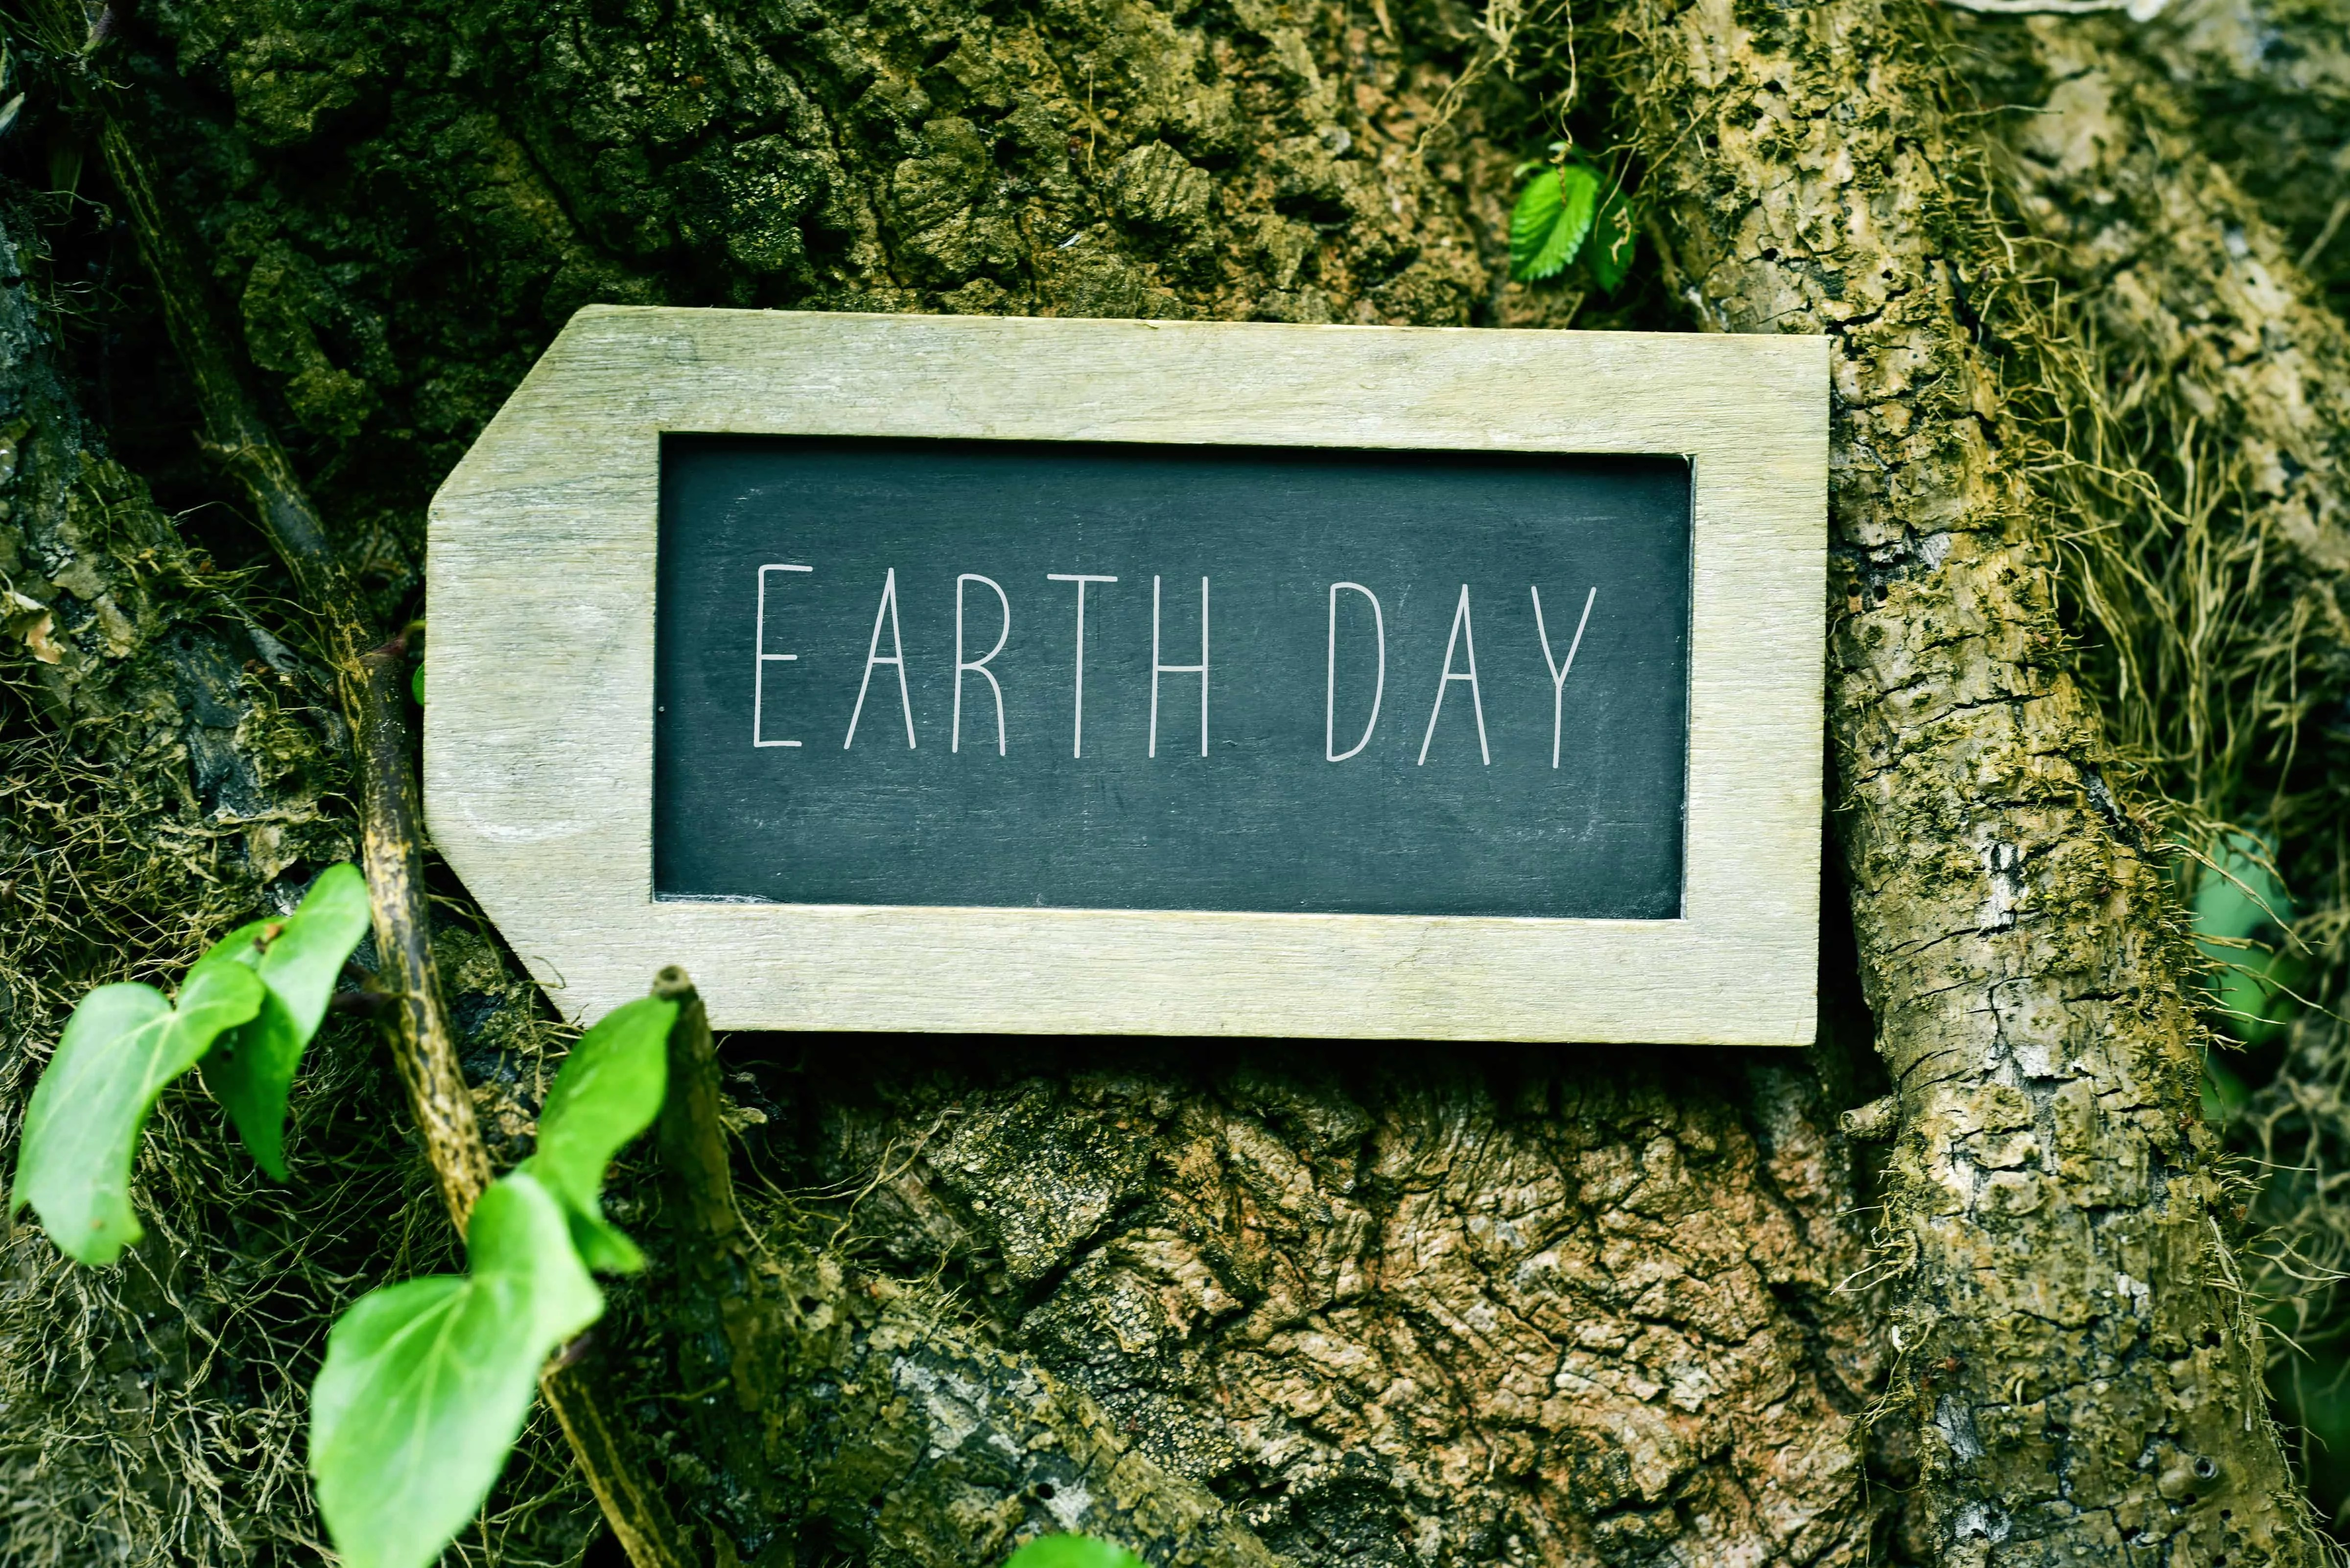 One Easy Earth Day Pledge